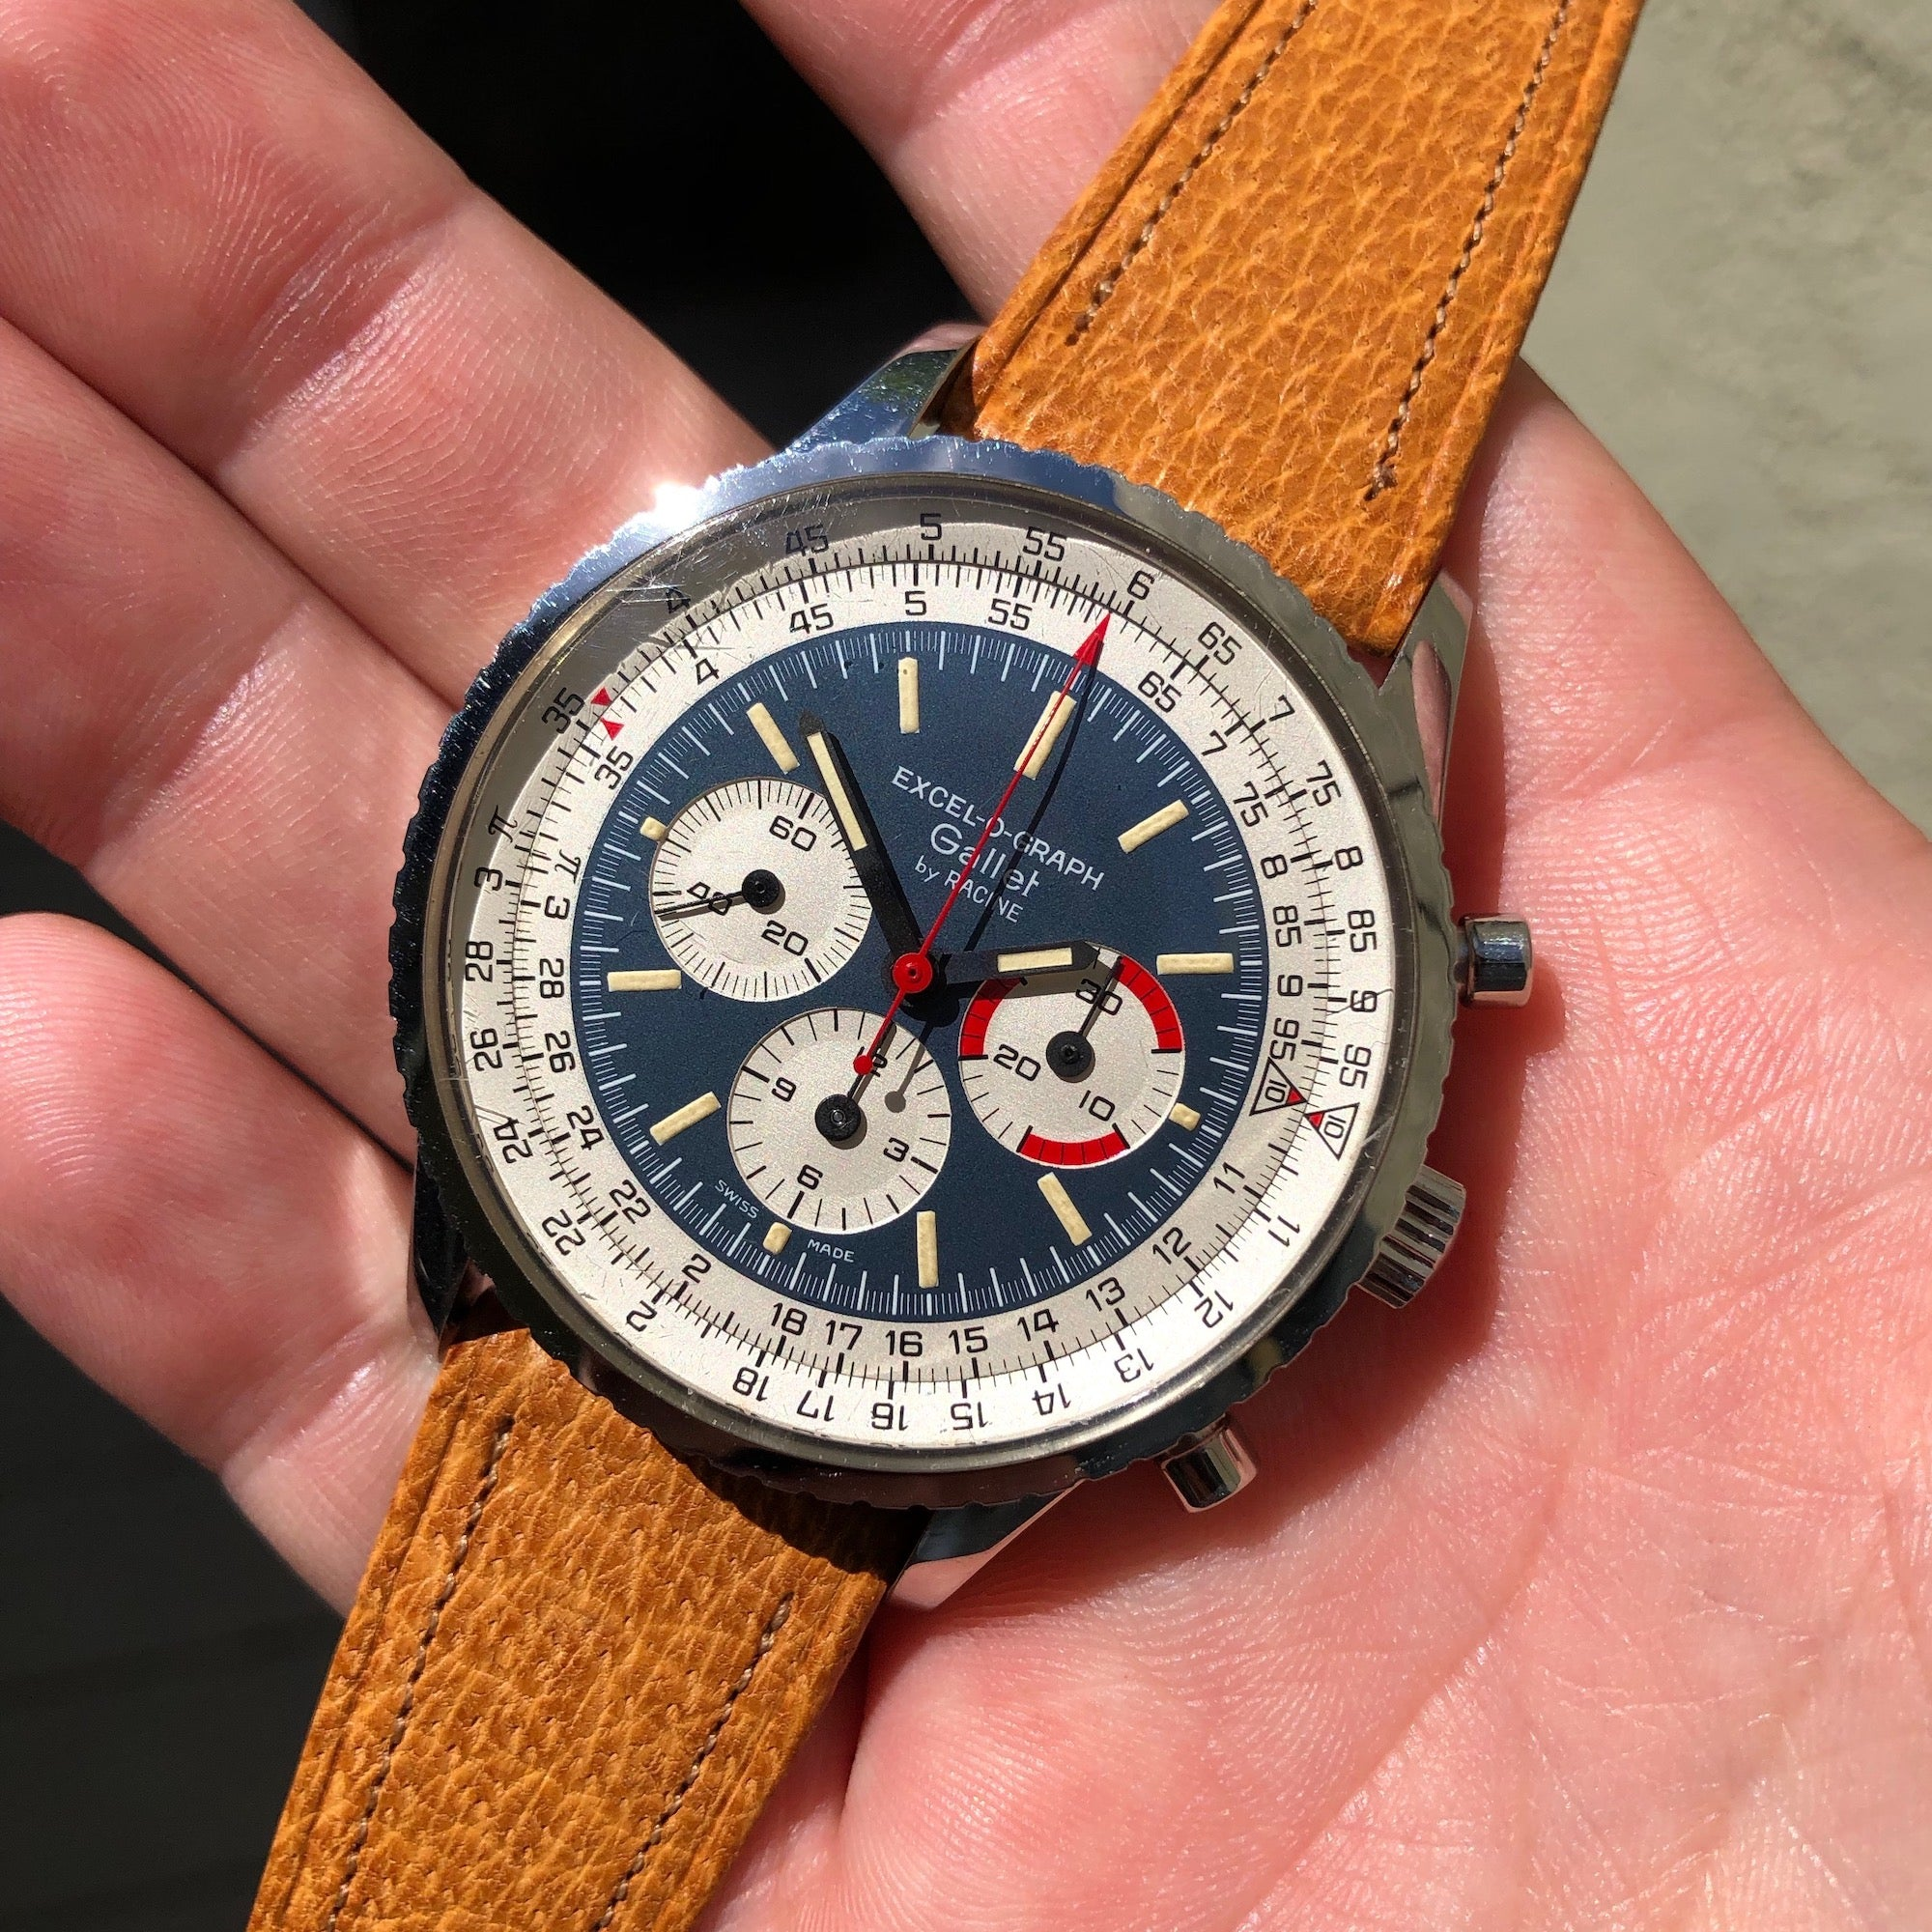 Vintage Gallet MultiChron Racine Excel-O-Graph Steel Chronograph EP 40.68 Wristwatch - Hashtag Watch Company